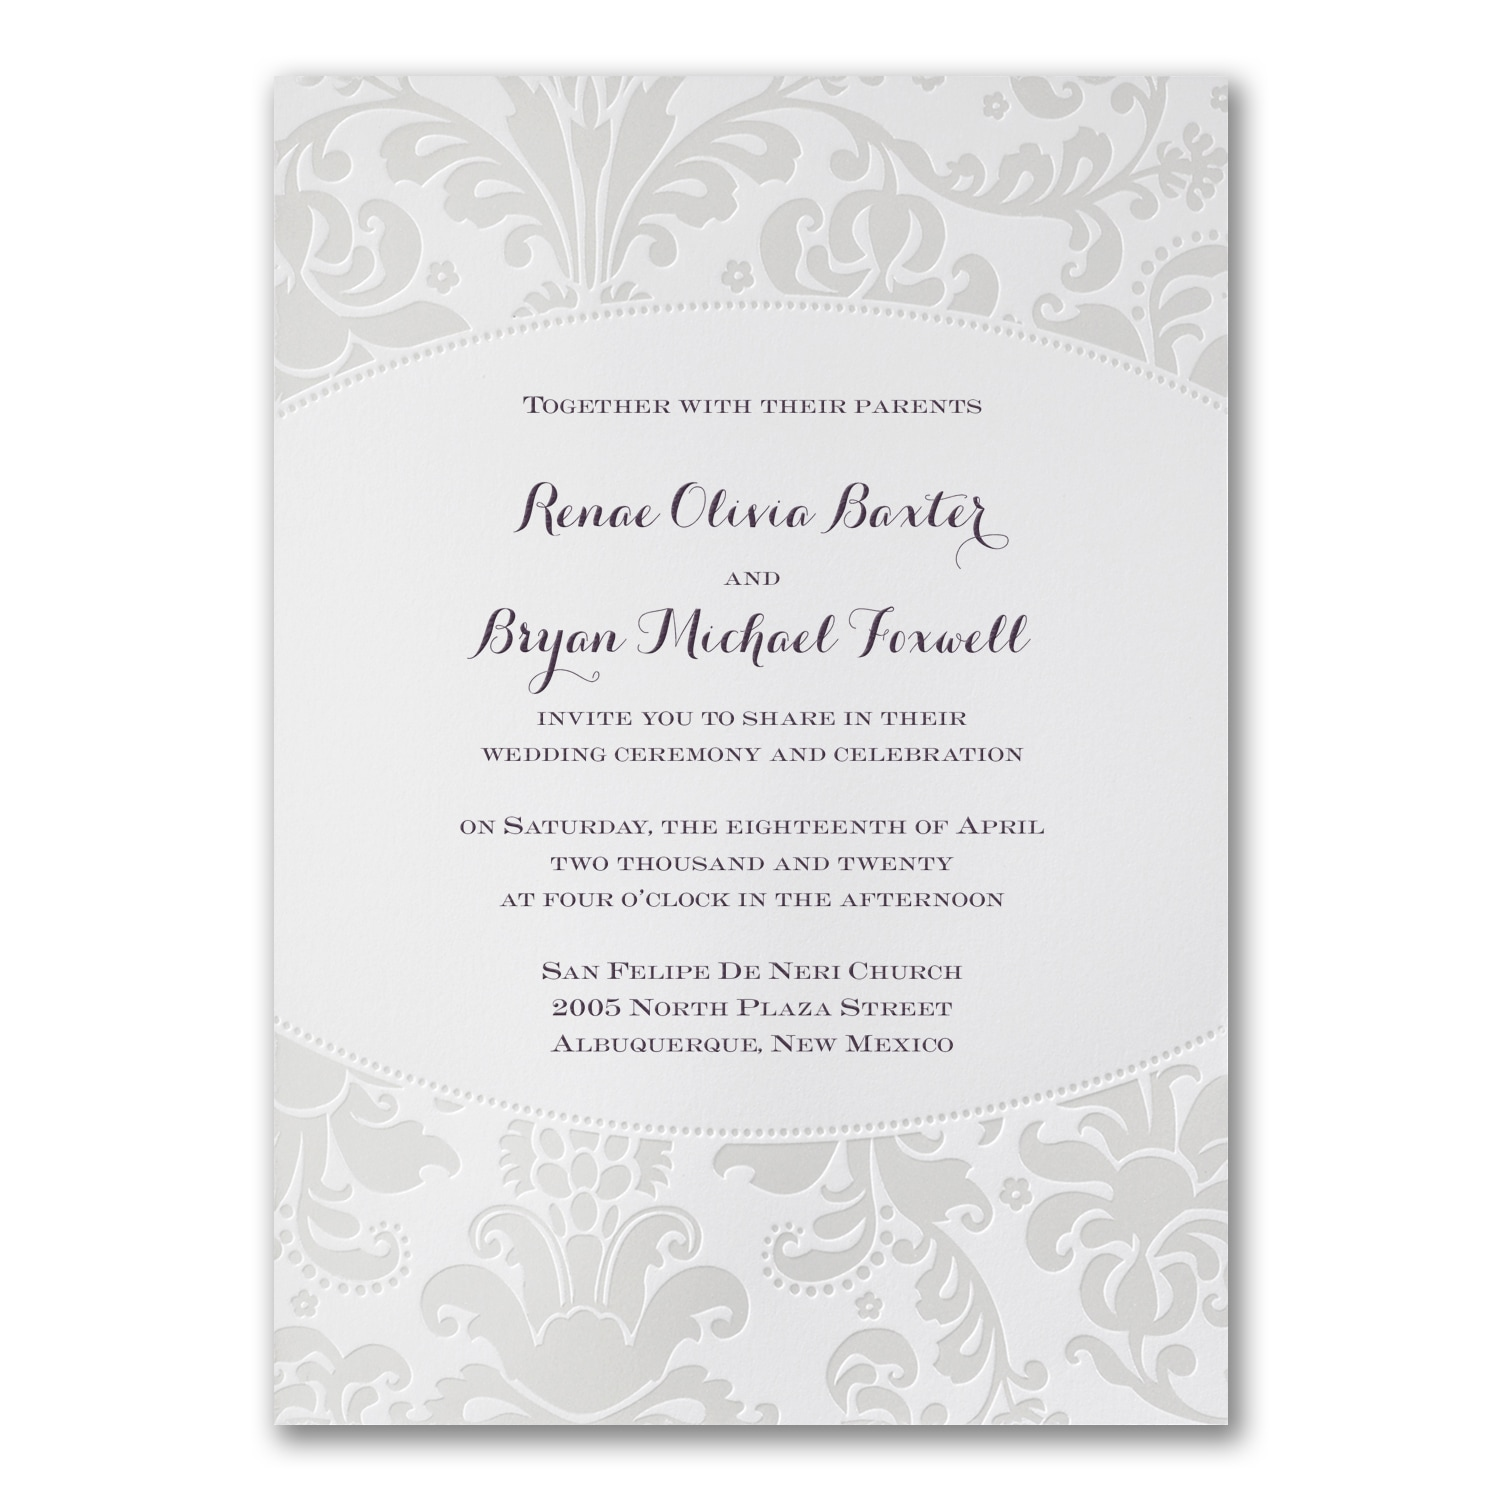 Pearlized Filigree Border Invitation Wedding Invitations